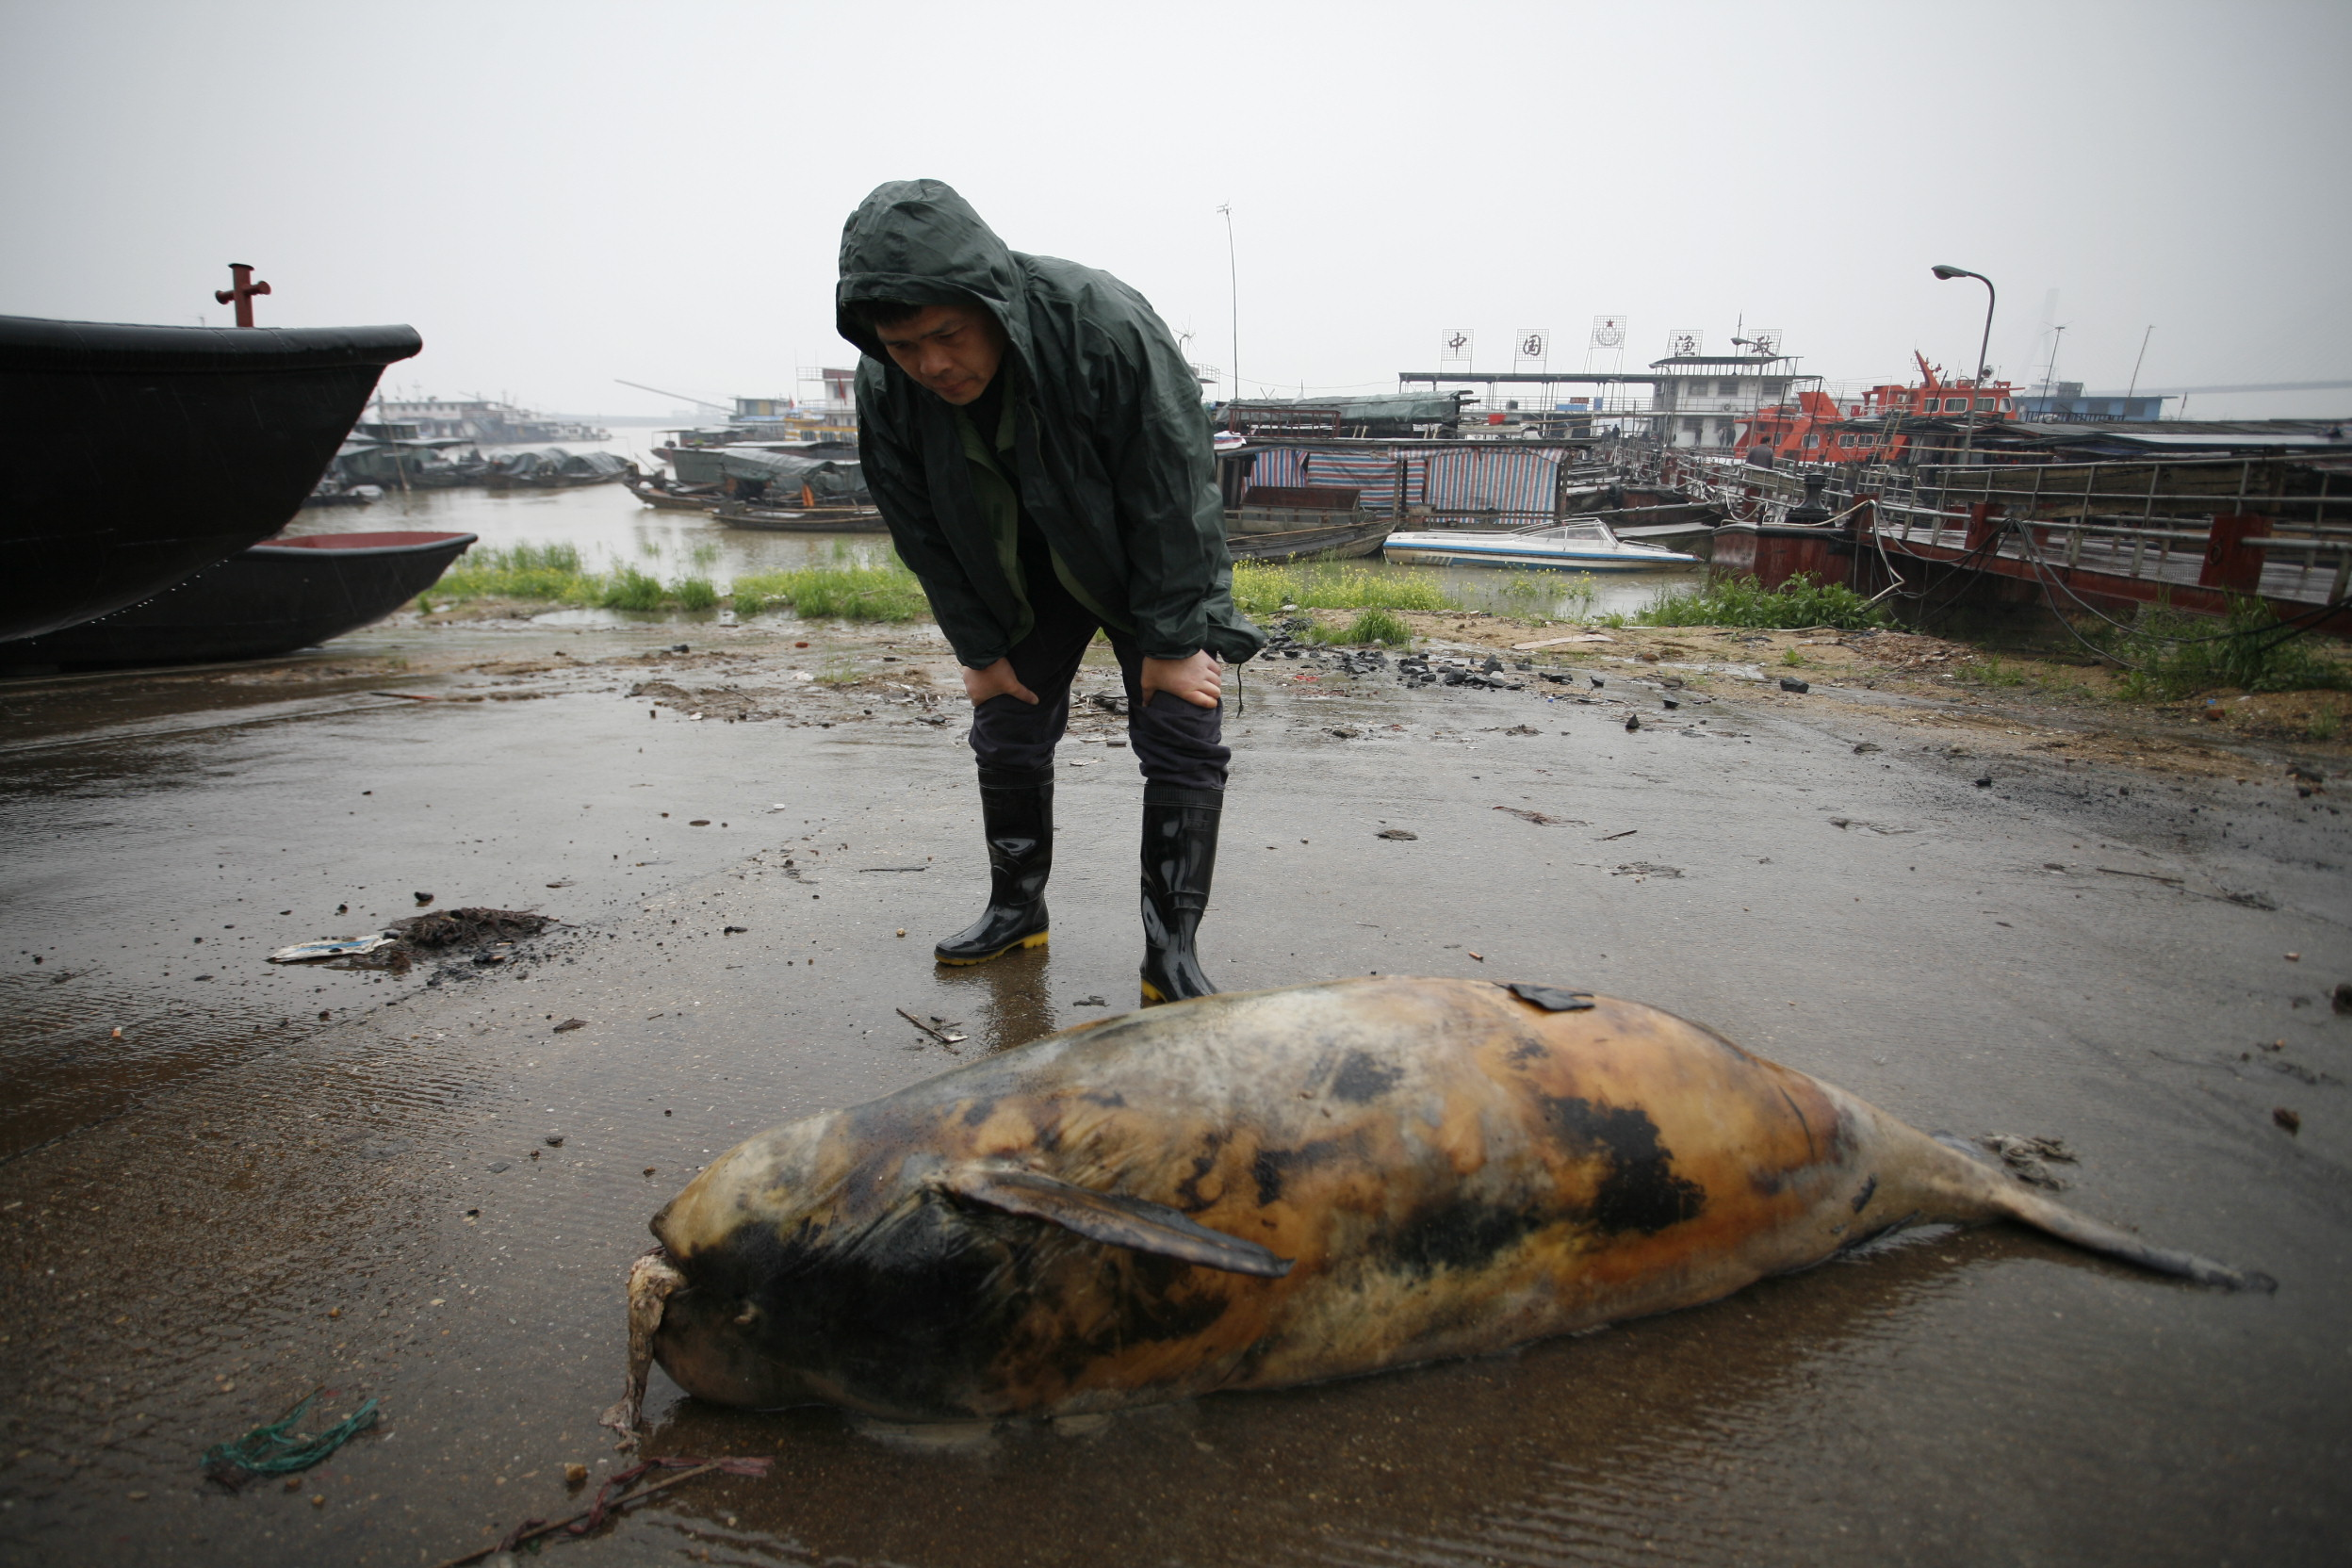 Yangtze finless porpoise population nosedives to 1,000